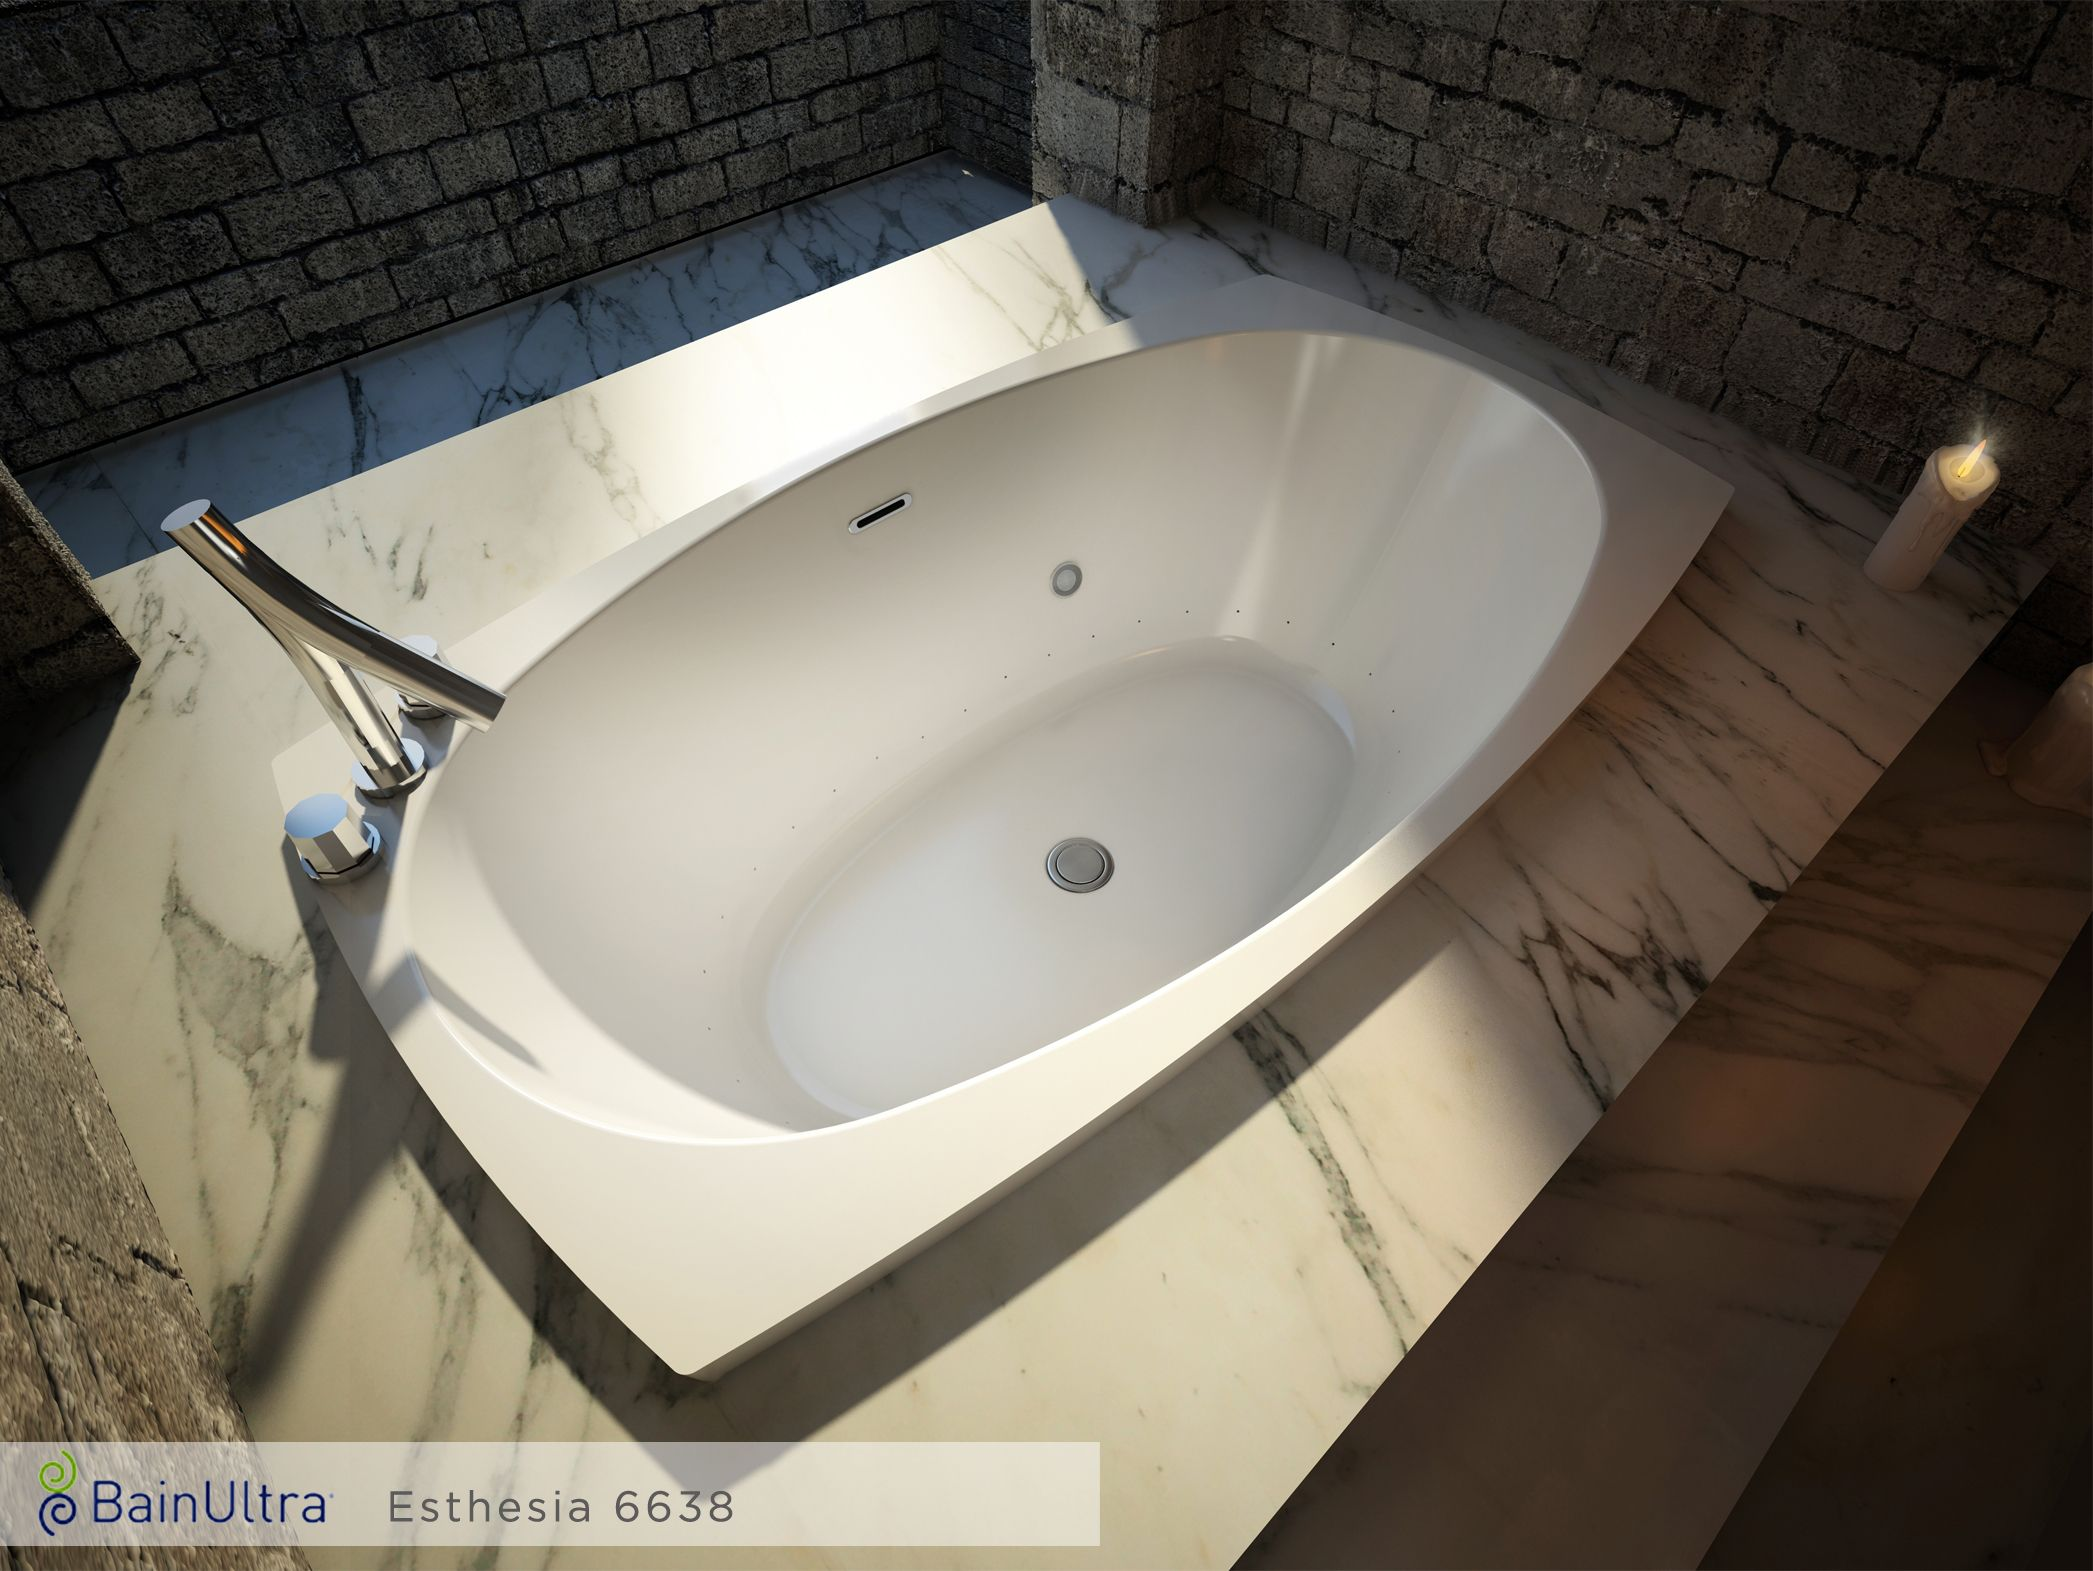 Superb Esthesia™ 6638 Freestanding Air Jet Tubs Make The Perfect Centerpiece Of  Your Own Private Luxury Spa Bathroom. These Therapeutic Bathtubs Are Made  ...